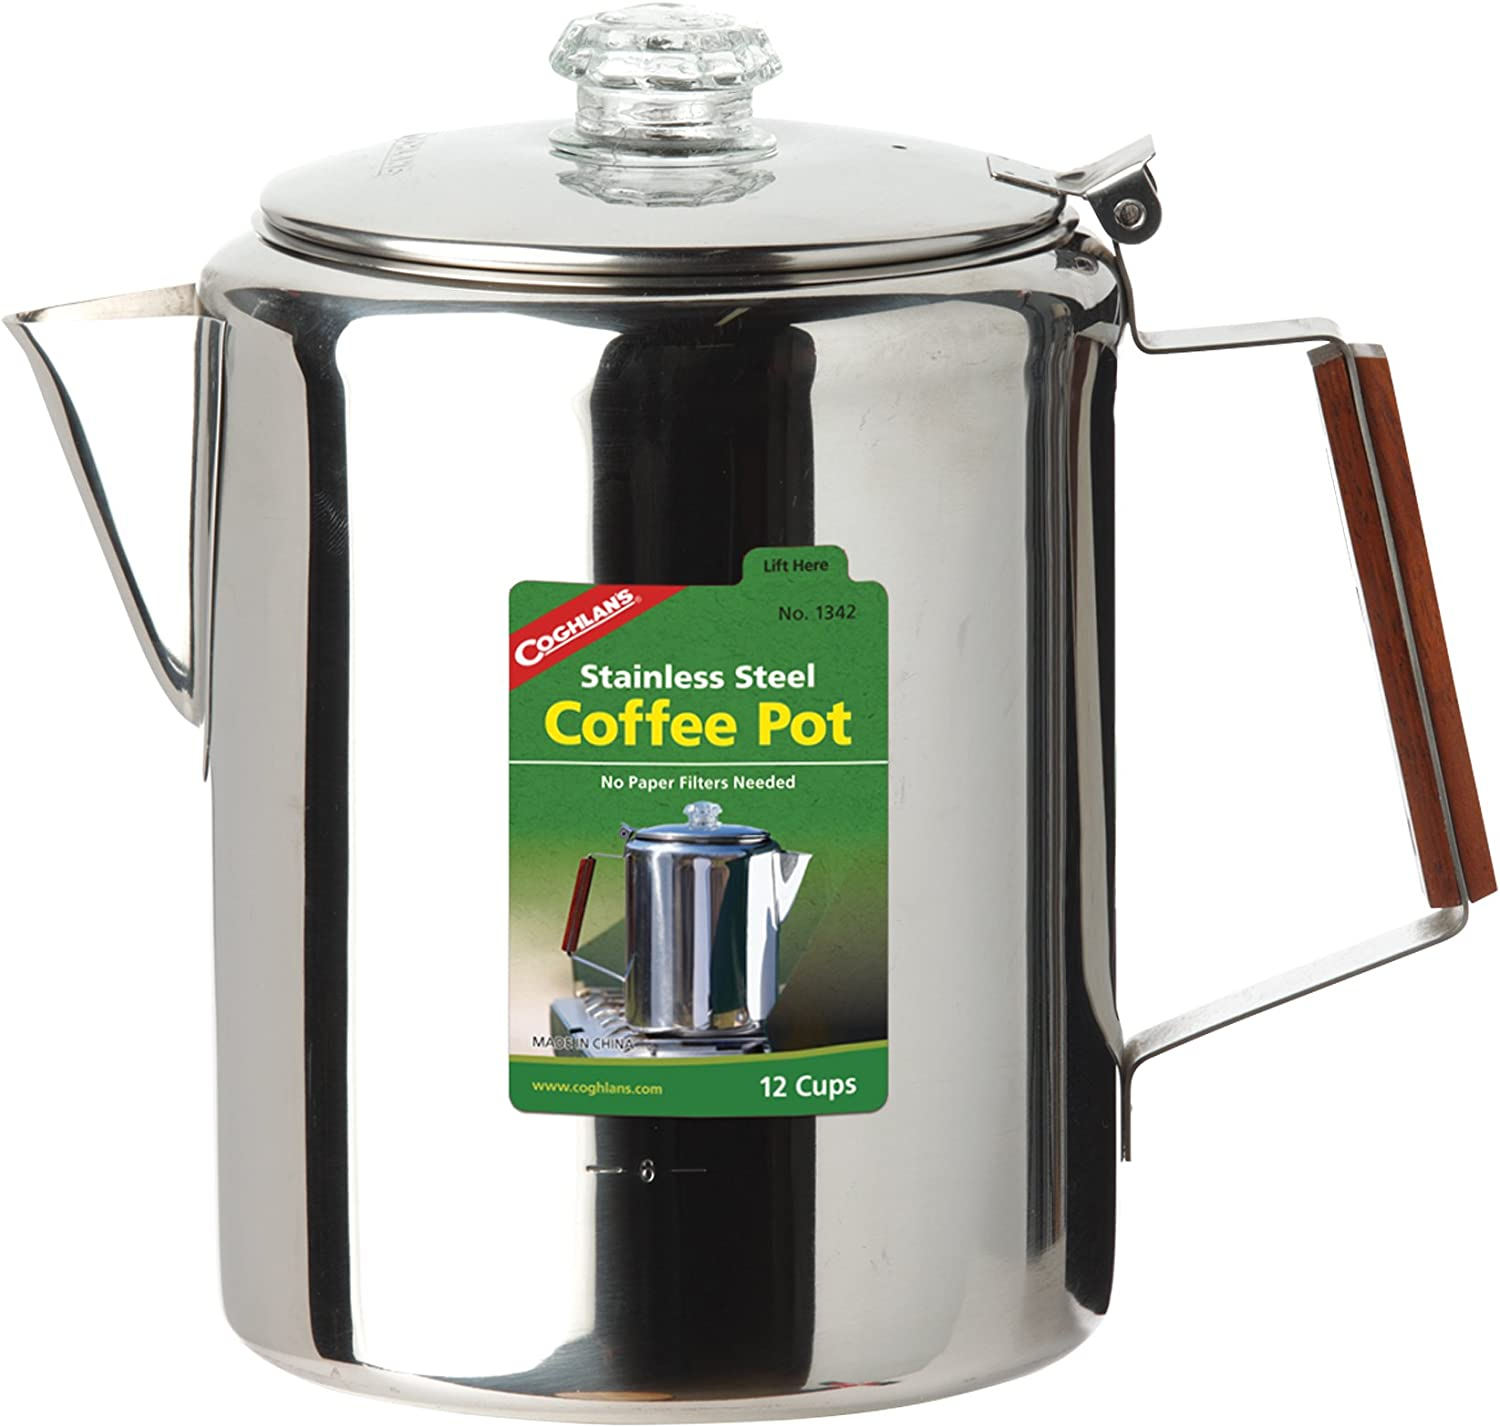 Coghlans 12-Cup Stainless Steel Coffee Pot Silver Coghlans 1342